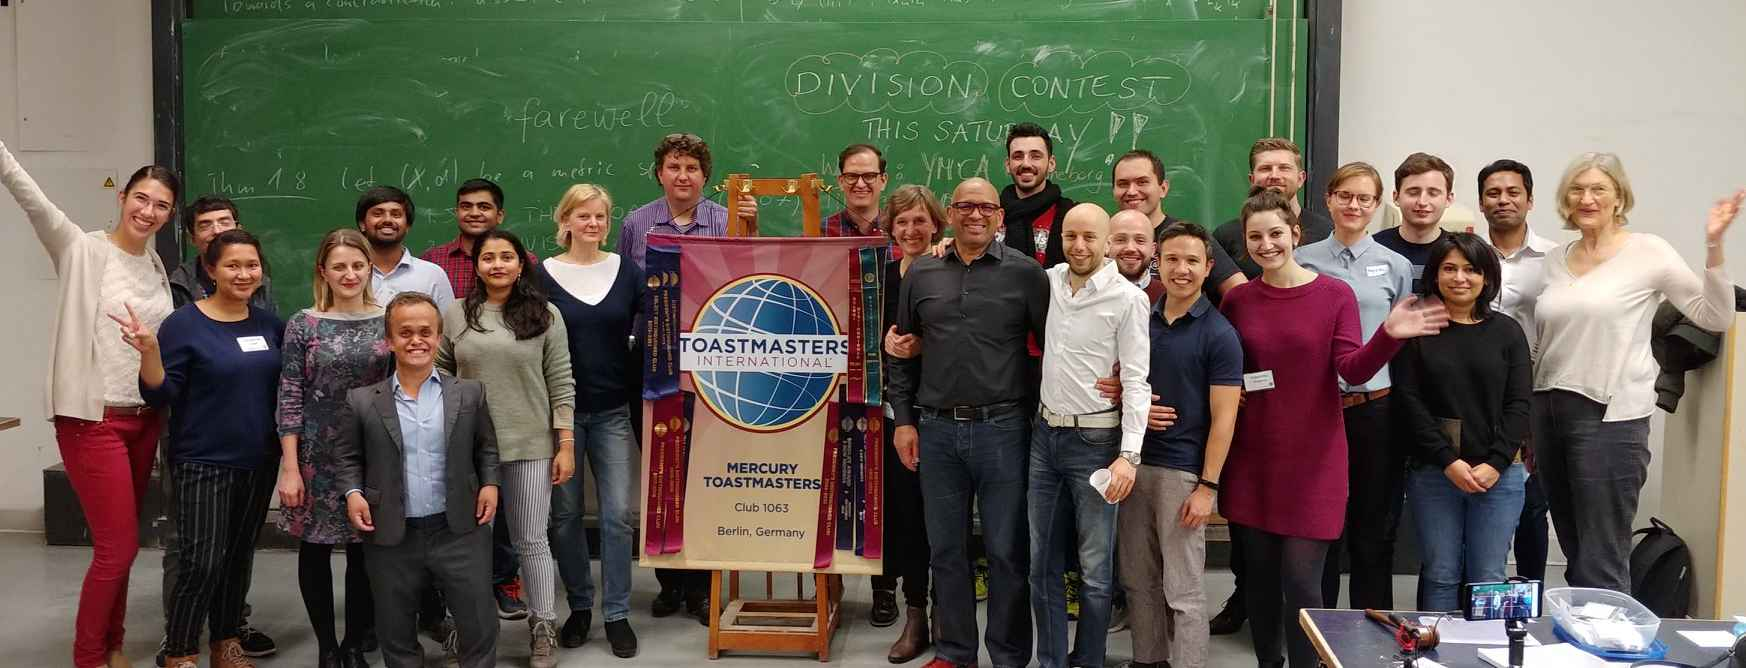 a group of happy toastmasters